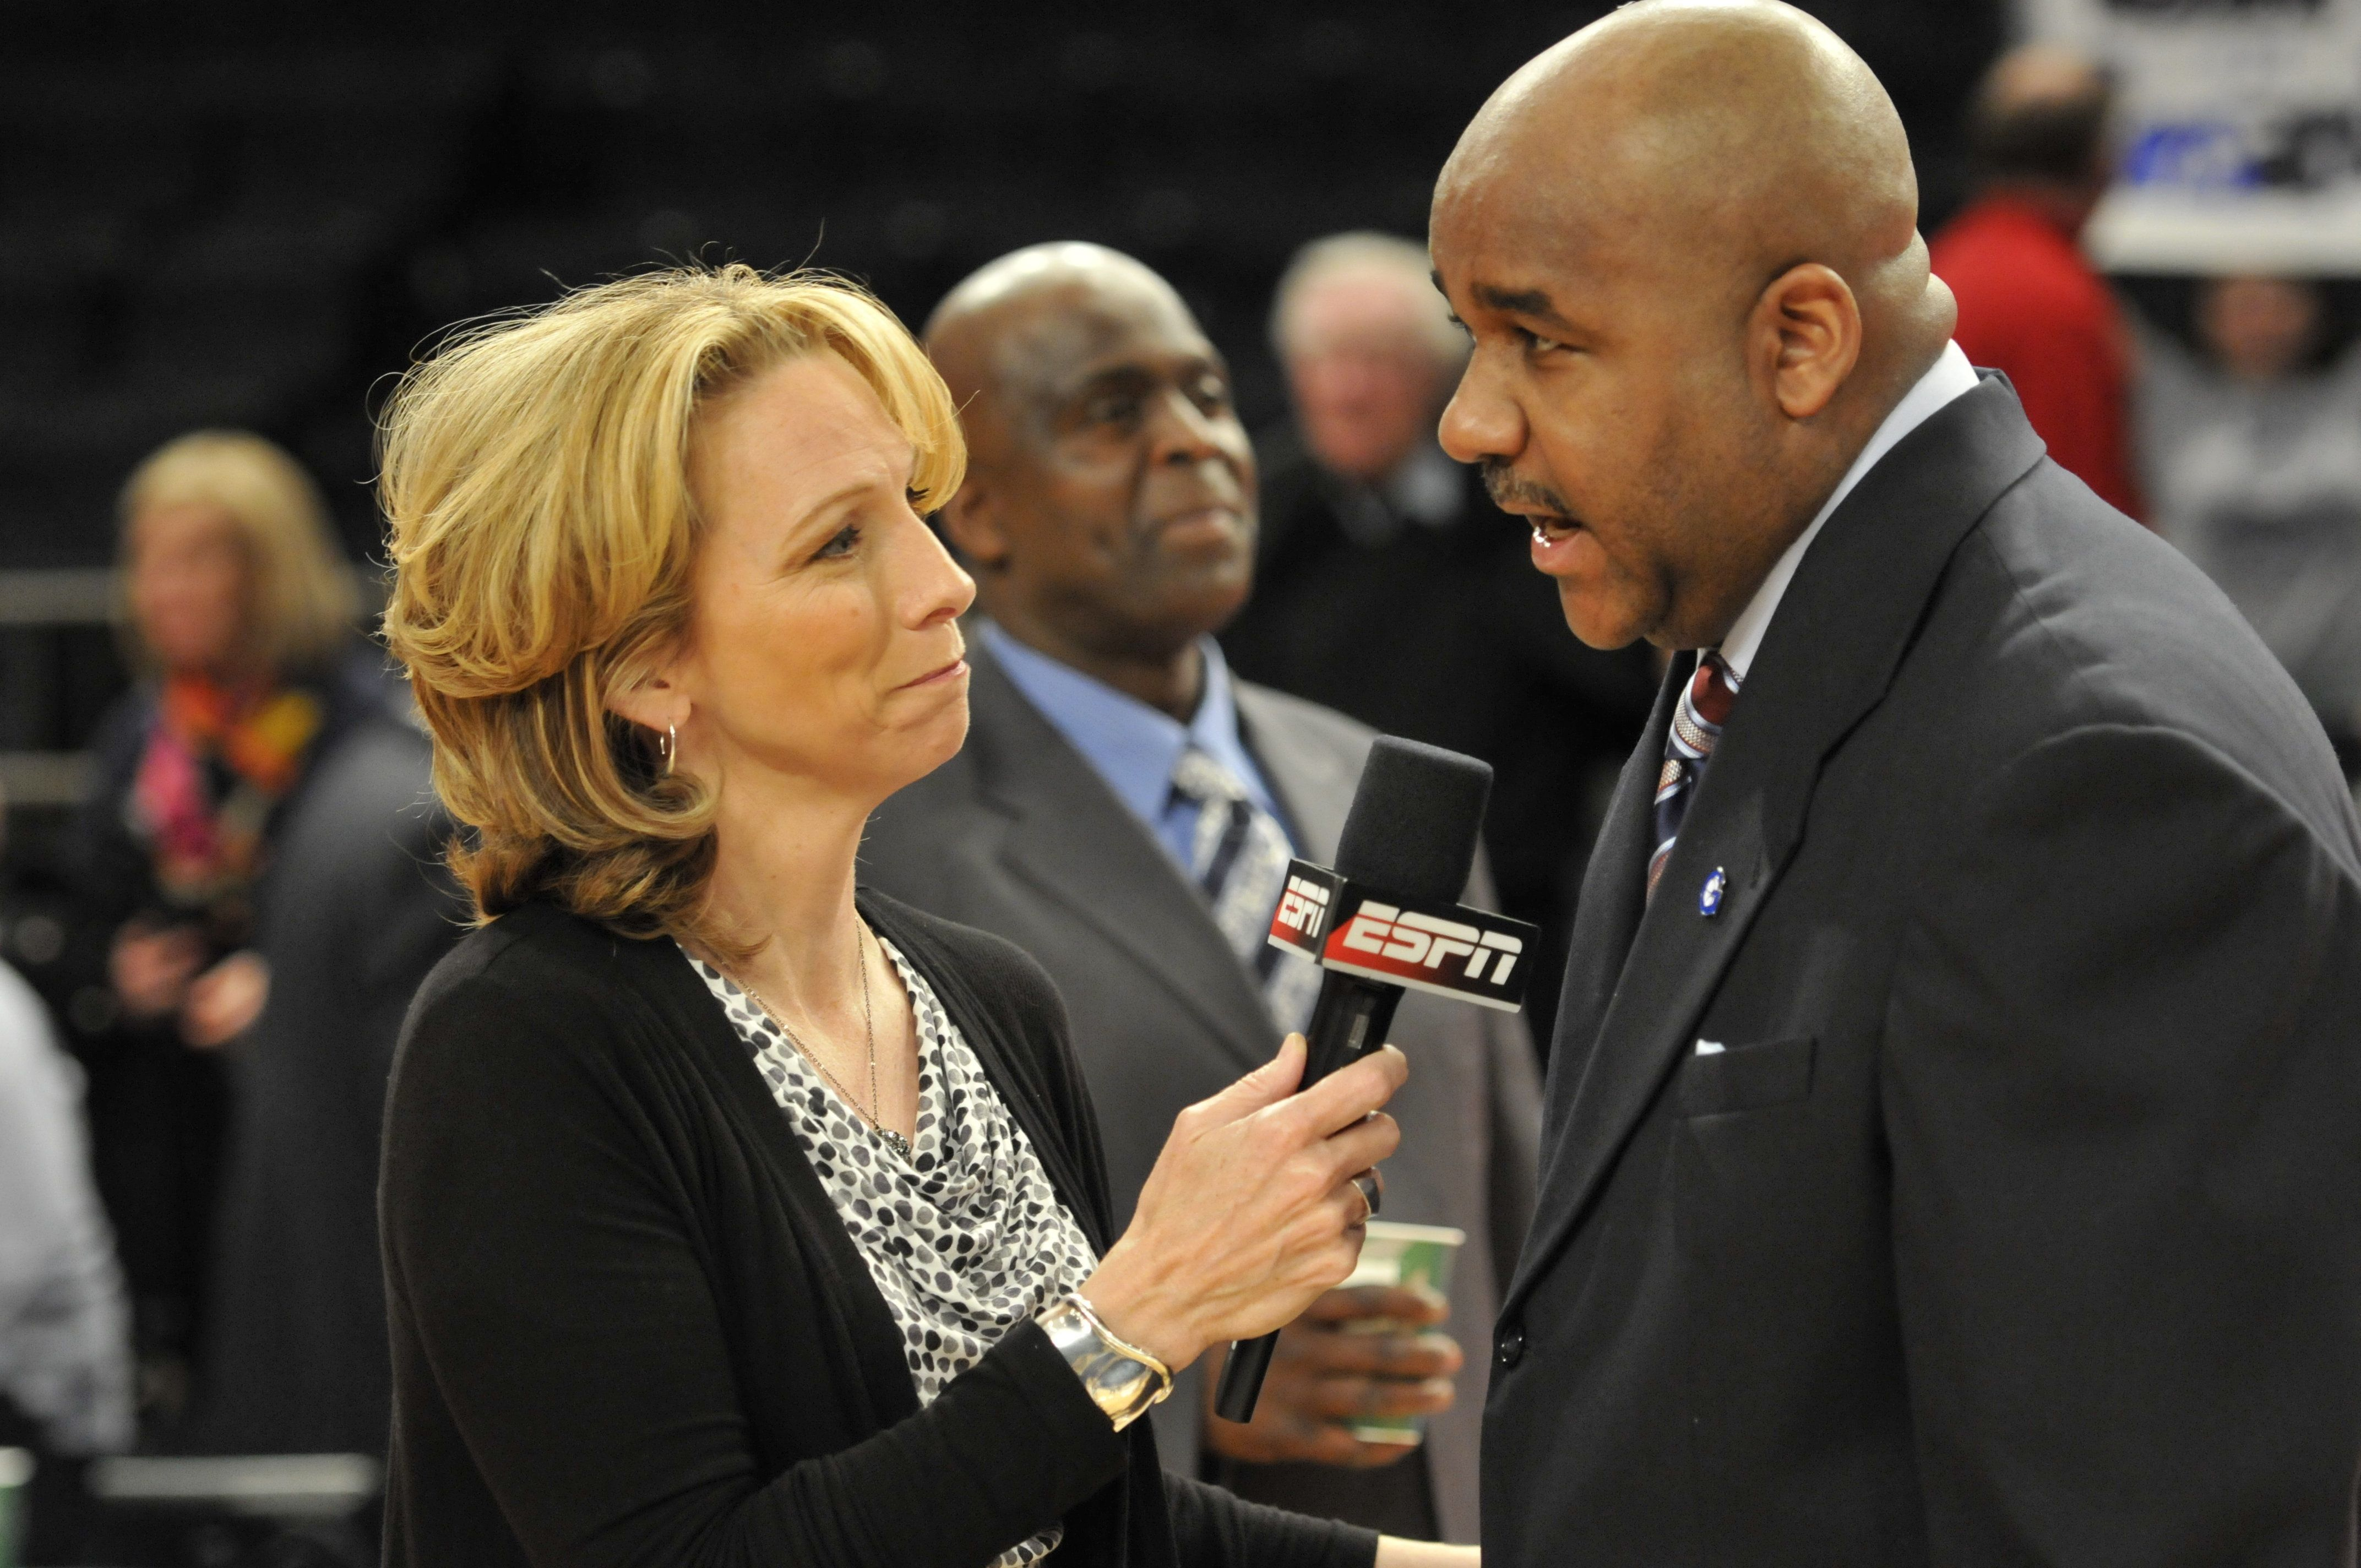 NEW YORK, N.Y.  - MARCH 7, 2012: Head Coach John Thompson III of the Georgetown University Hoyas talks to ESPN reporter Beth Mowins following the Hoyas' win over the University of Pittsburgh Panthers in the second round of the 2012 BIG EAST Conference Men's Basketball Championships at Madison Square Garden in New York, NY on March 7, 2012.  The Hoyas won 64-52. (Photo by Tom Maguire/BIG EAST Conference/Collegiate Images/Getty Images)